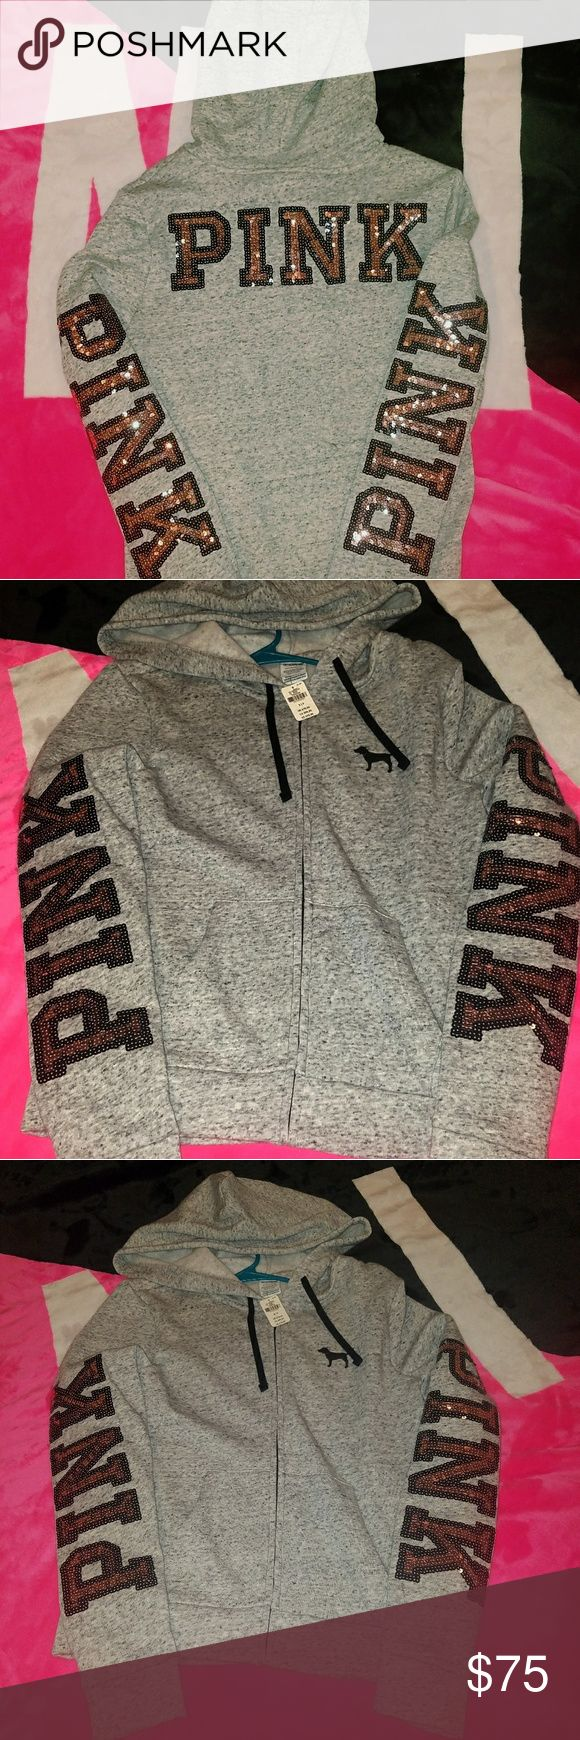 VS PINK SMALL BLING NWT BRAND NEW STYLE  CURRENTLY IN STORES AND ONLINE  PAID STRAIGHT FULL PRICE FOR THIS ONE SO.MY PRICE IS NON NEGOTIABLE  SORRY.  WOULD RECOMMEND THIS FOR AN EXTRA SMALL OR A SMALL.BUT NOT FOR A MEDIUM.  HEATHERED GRAY WITH ROSE GOLD BLING LOGOS    NO I CANNOT TRADE THIS  NO I WILL NOT TAKE MUCH LESS BECAUSE I CAN STILL GET A FULL REFUND   THANKS FOR YOUR UNDERSTANDING   HAPPY POSHING PINK Victoria's Secret Tops Sweatshirts & Hoodies